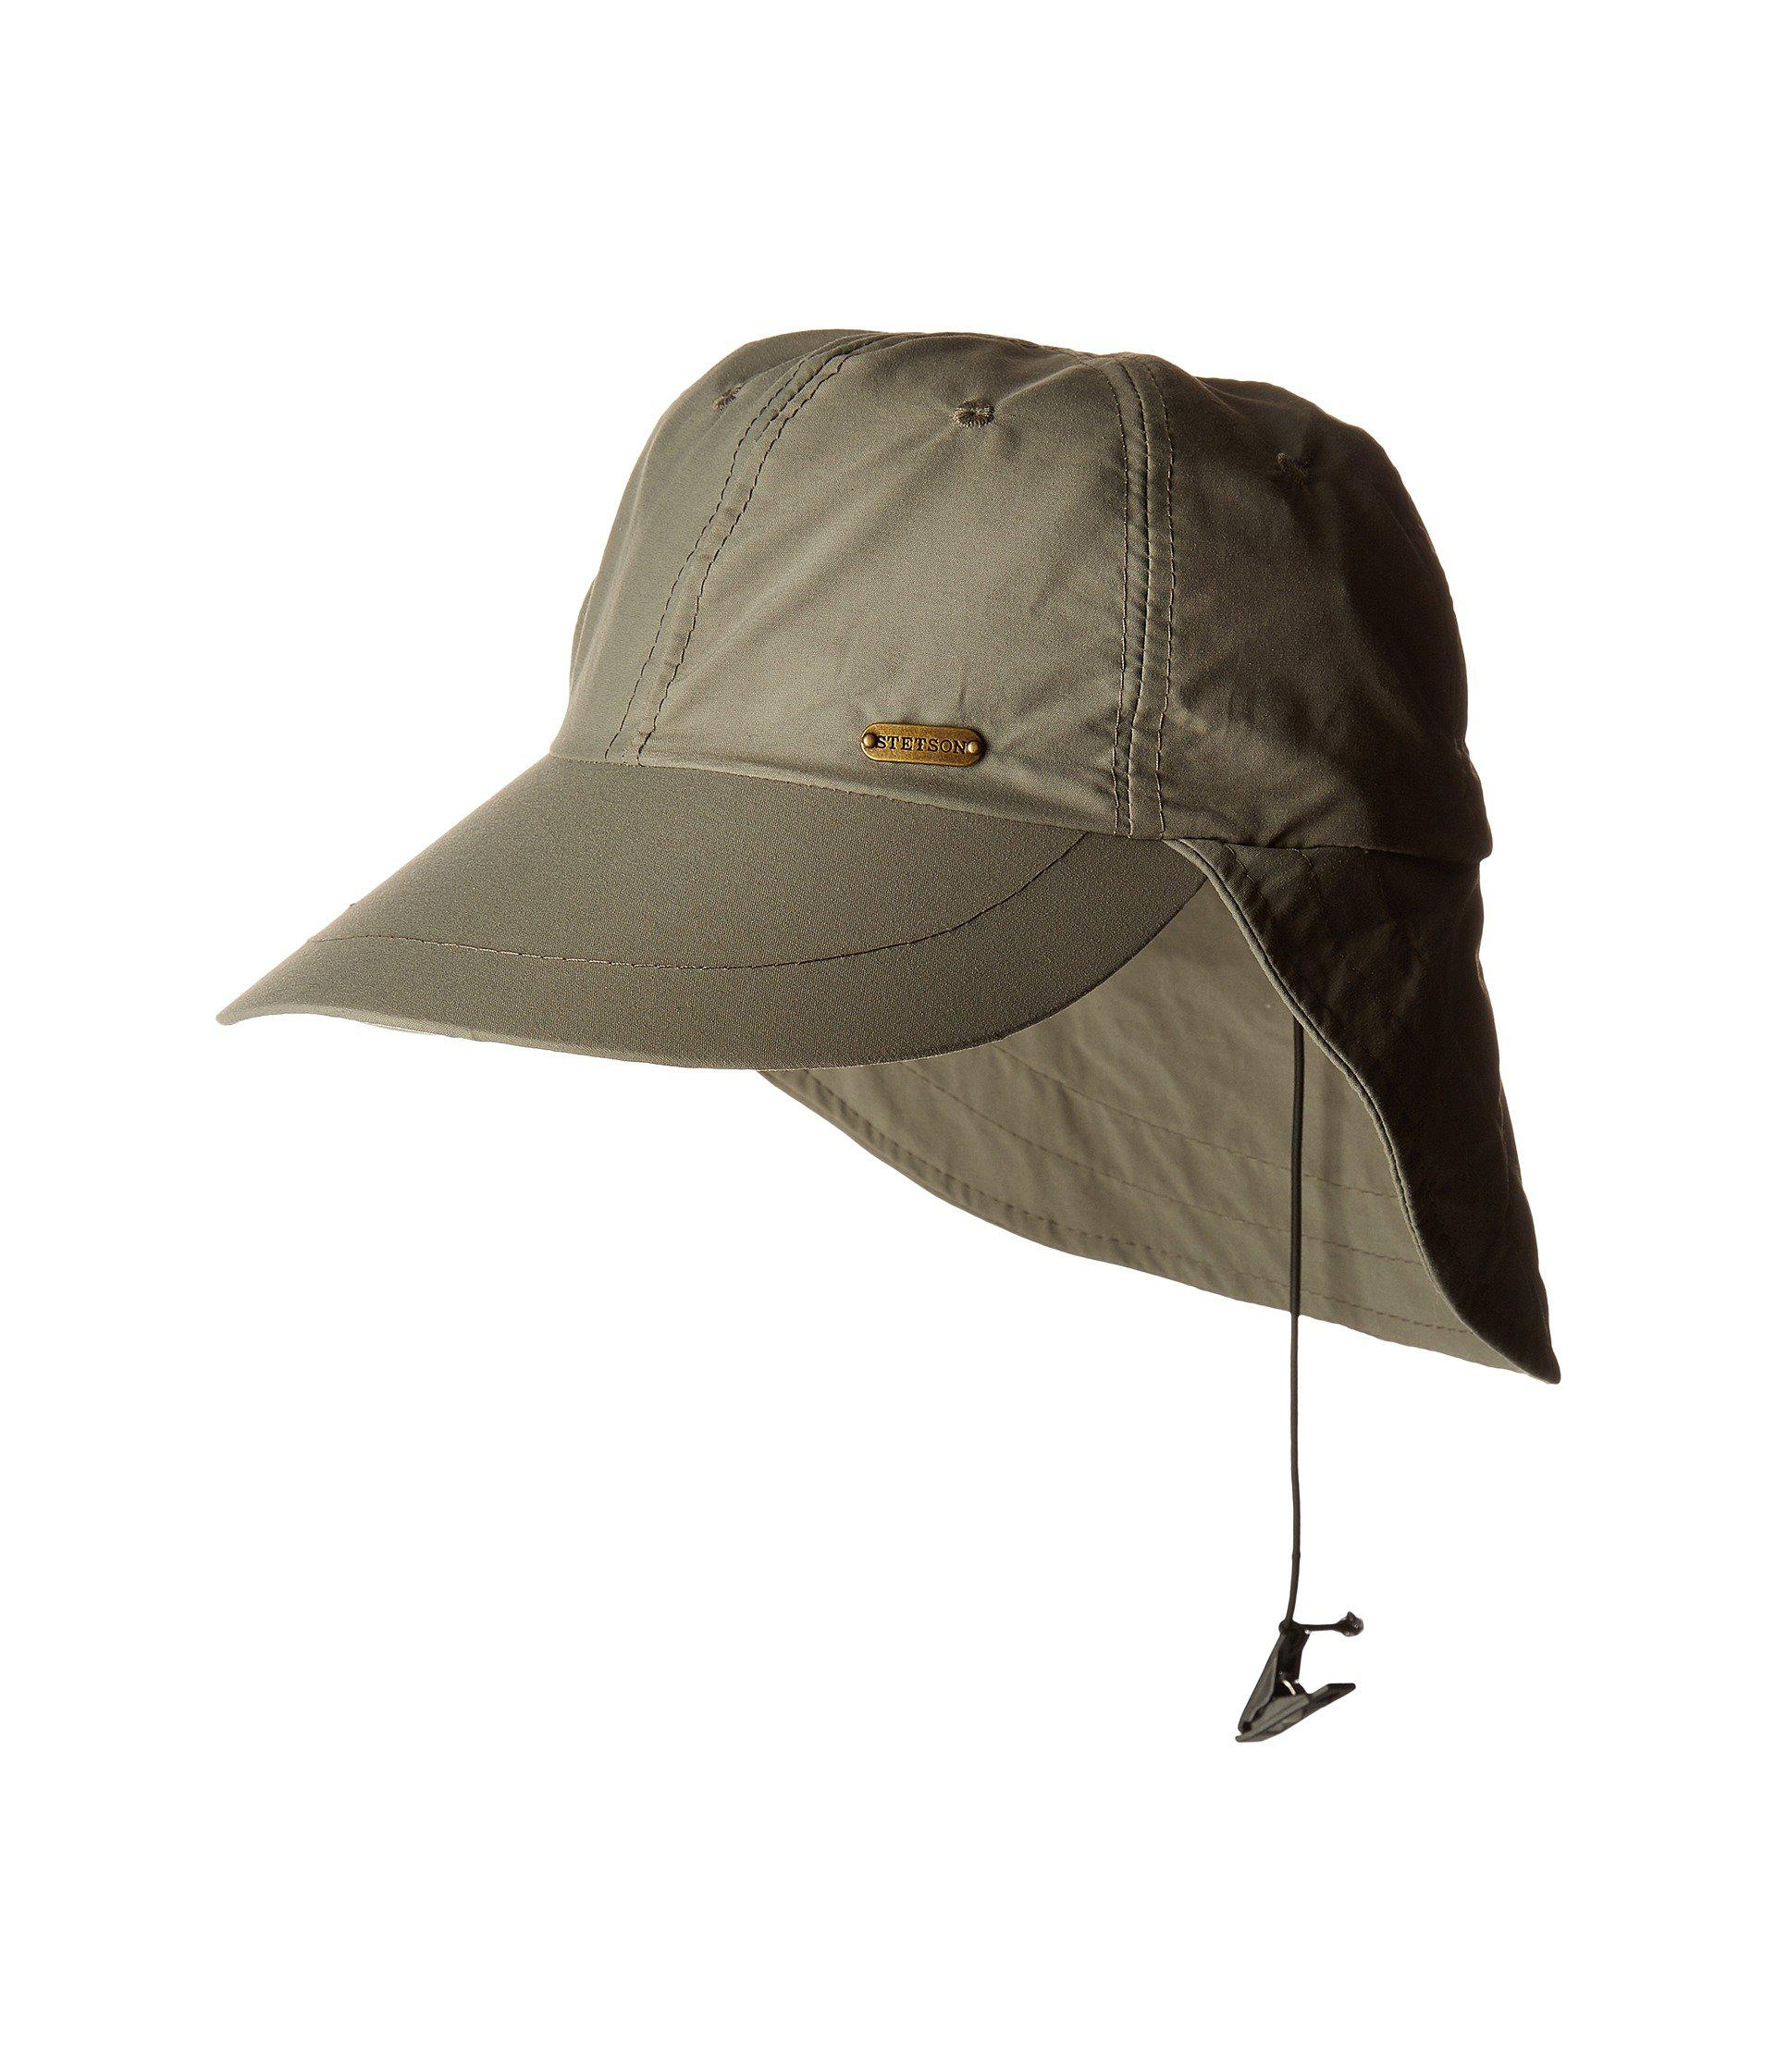 5c36e6f6abb5b Lyst - Stetson No Fly Zone Flap Cap (willow) Caps for Men